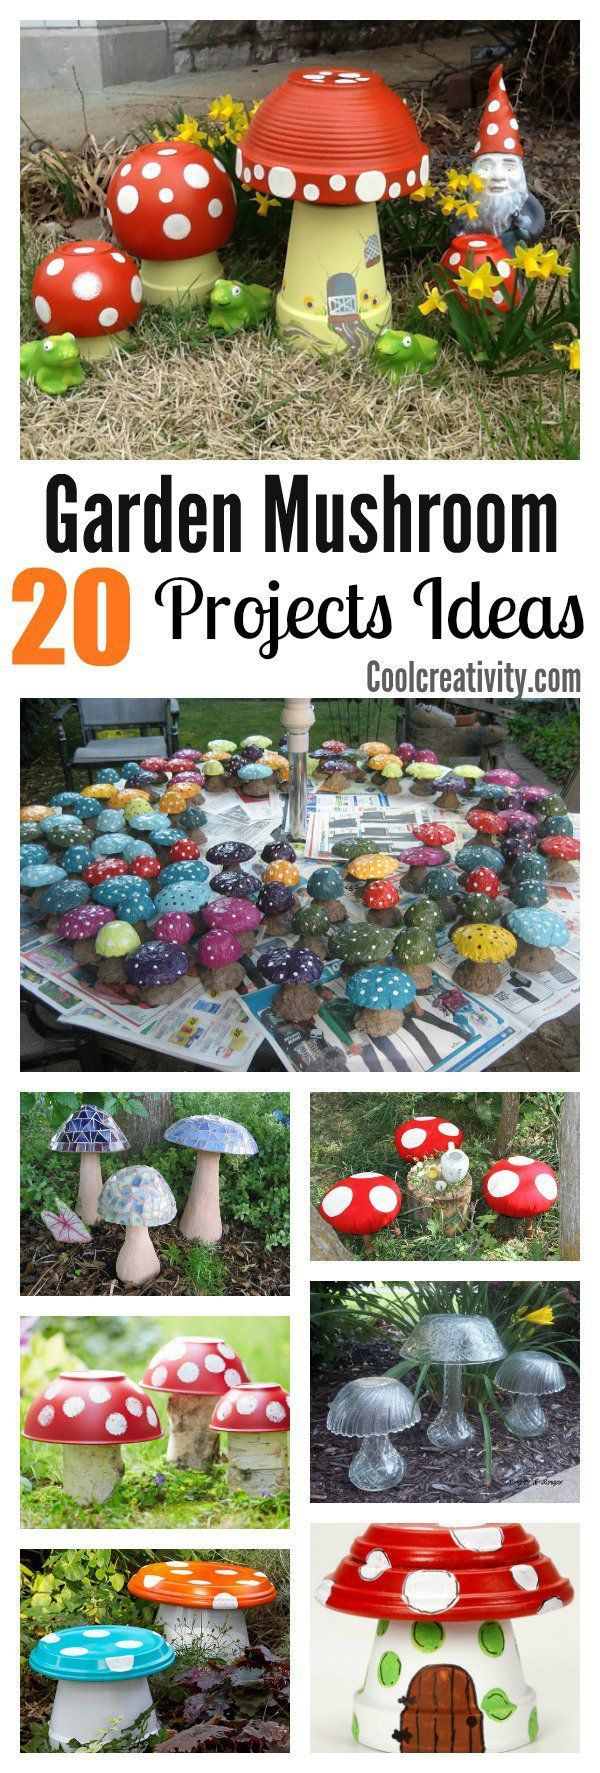 20 garden mushroom projects